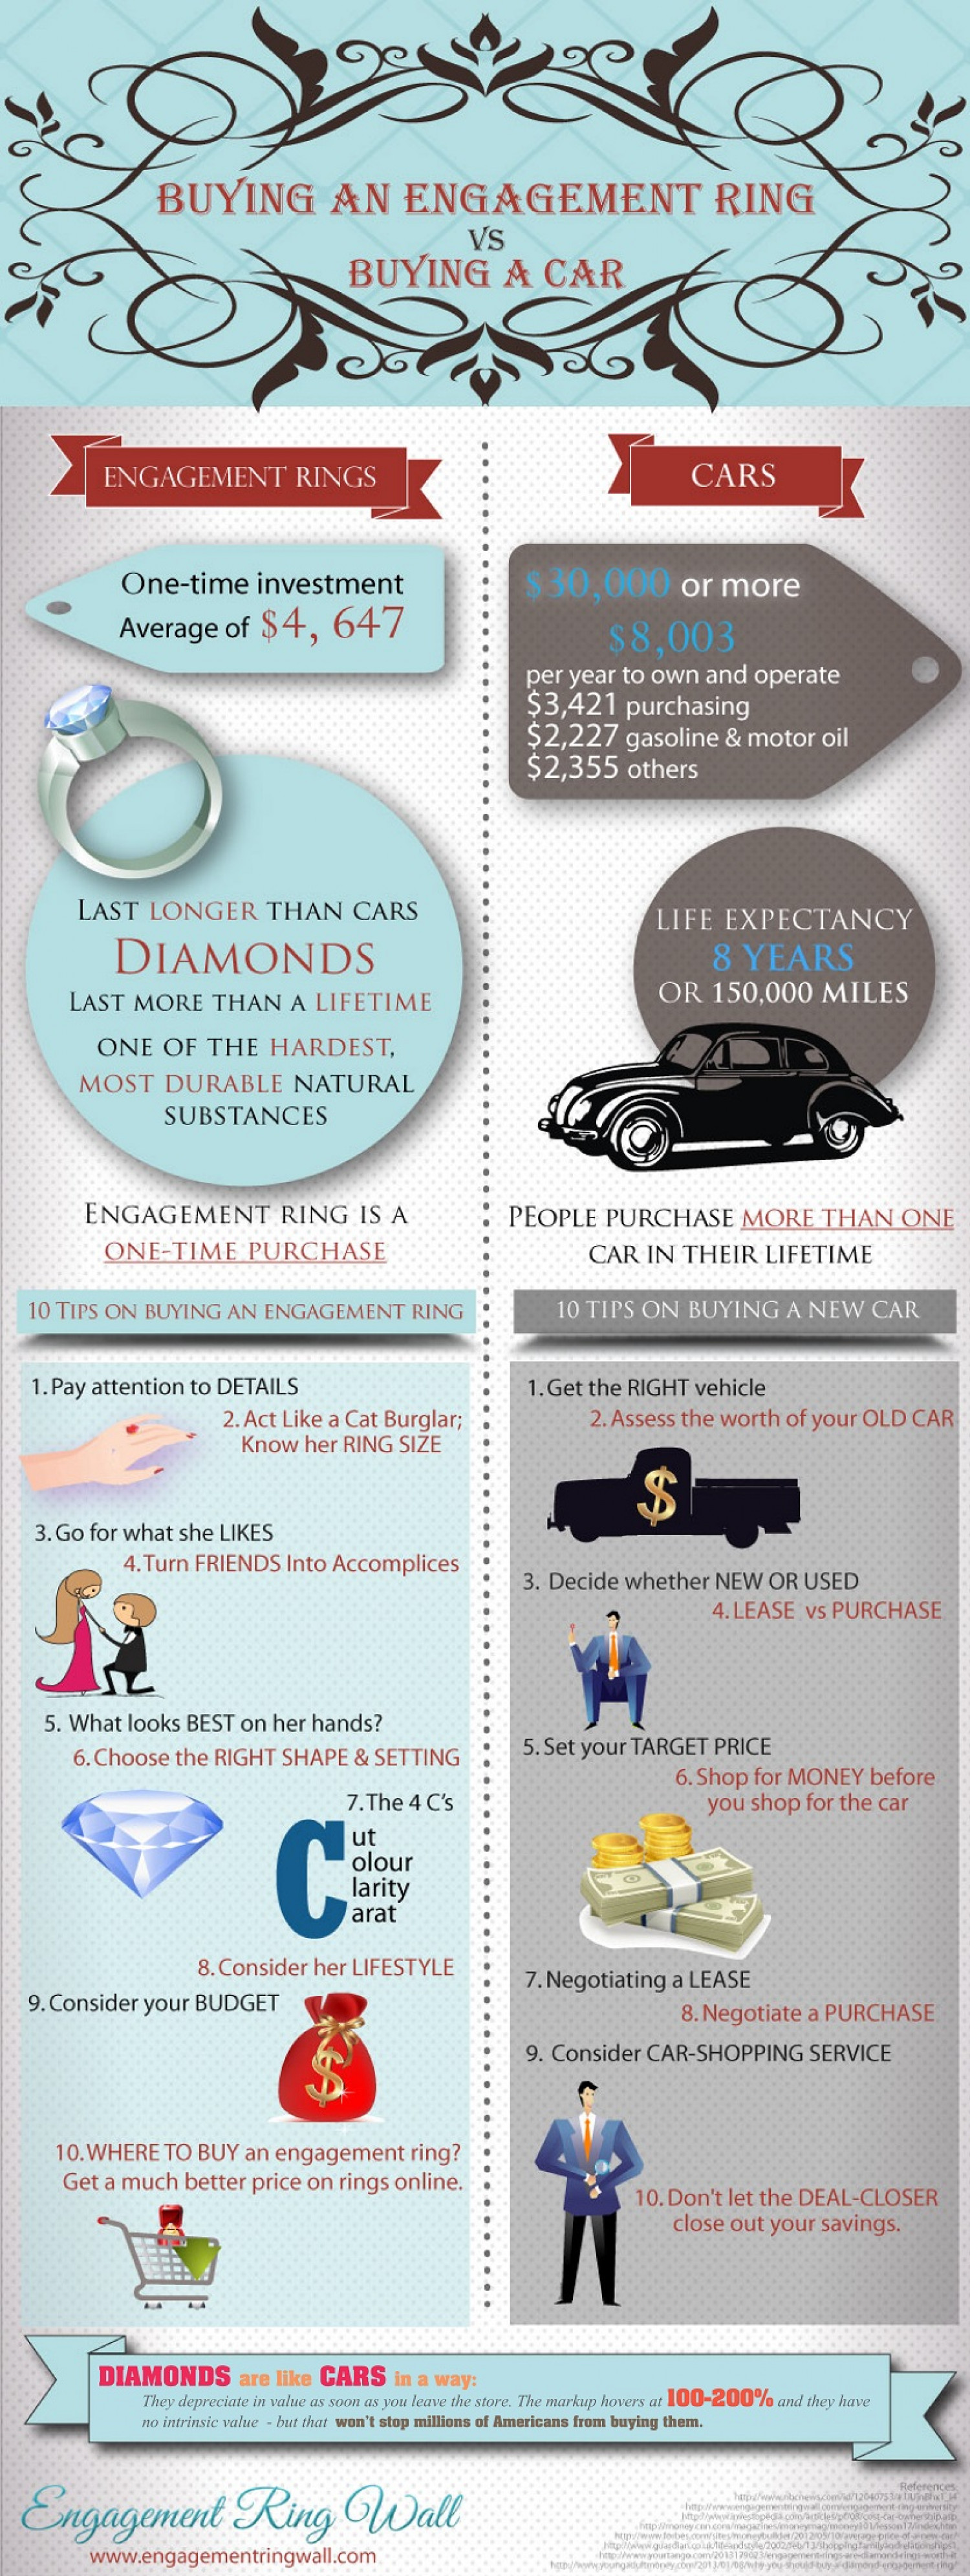 Buying an Engagement Ring Vs. Buying a Car Infographic